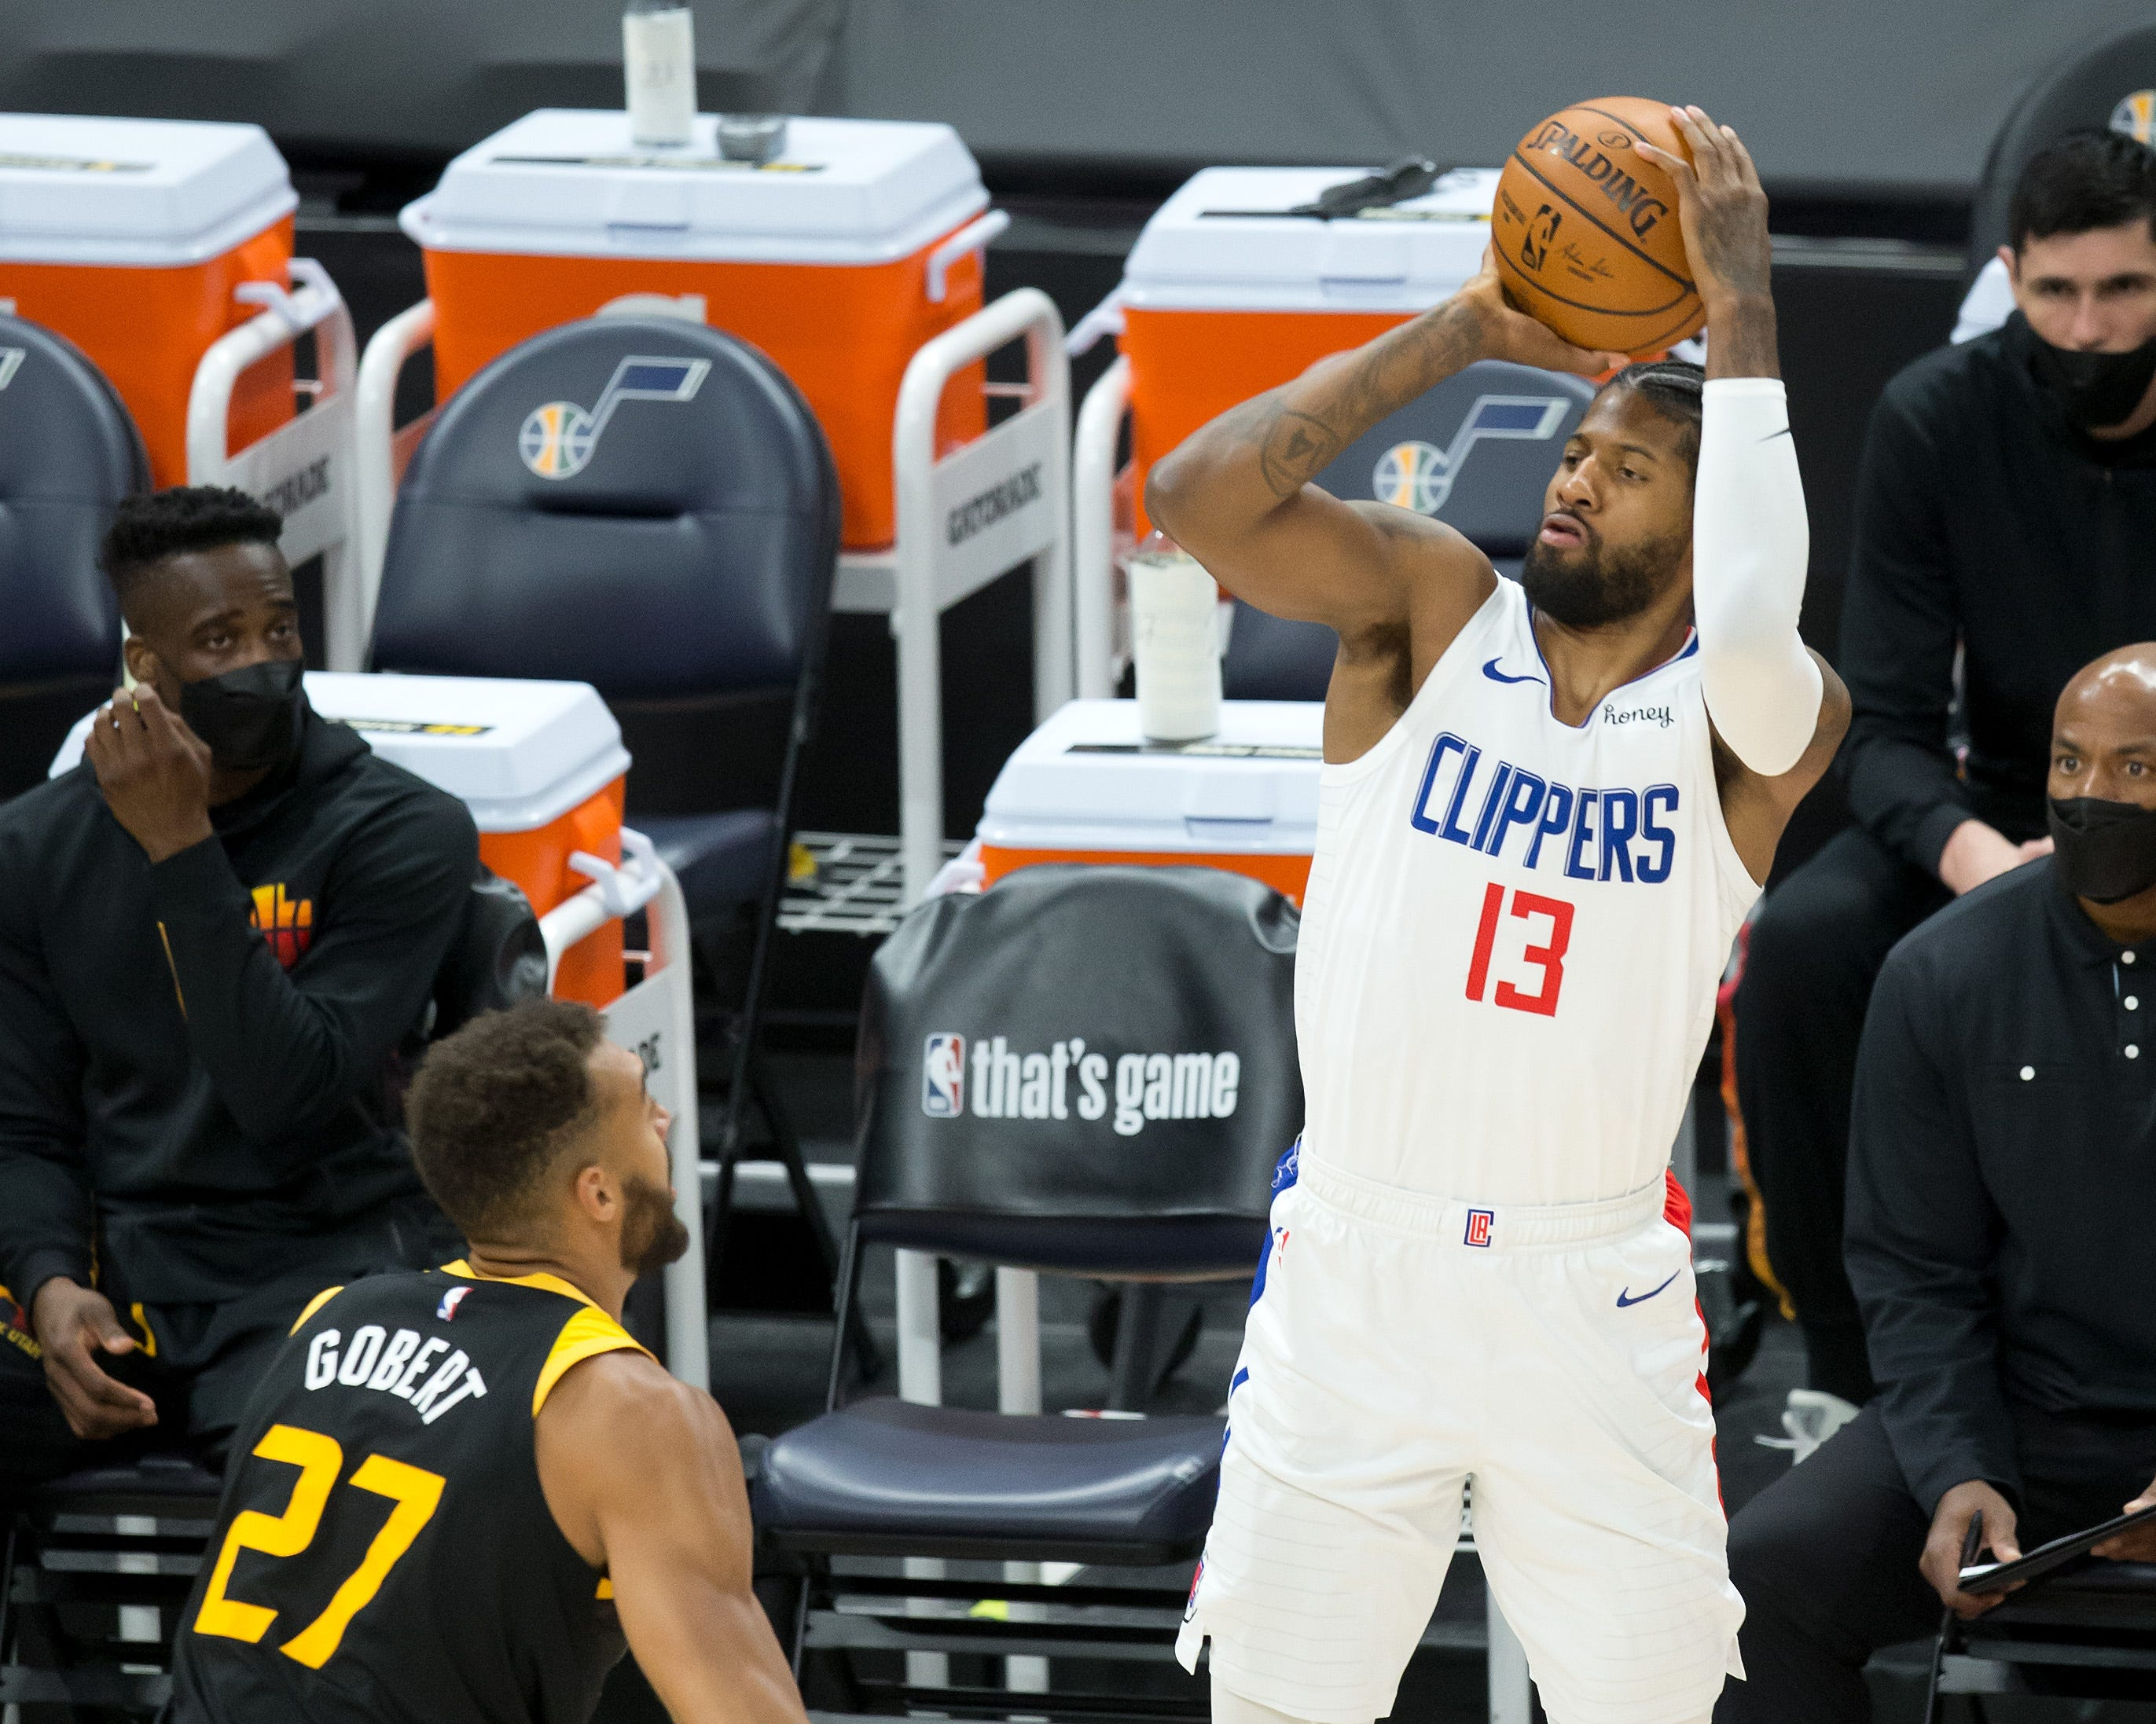 Paul George leads way as Clippers get win over Jazz in Game 5 without injured Kawhi Leonard